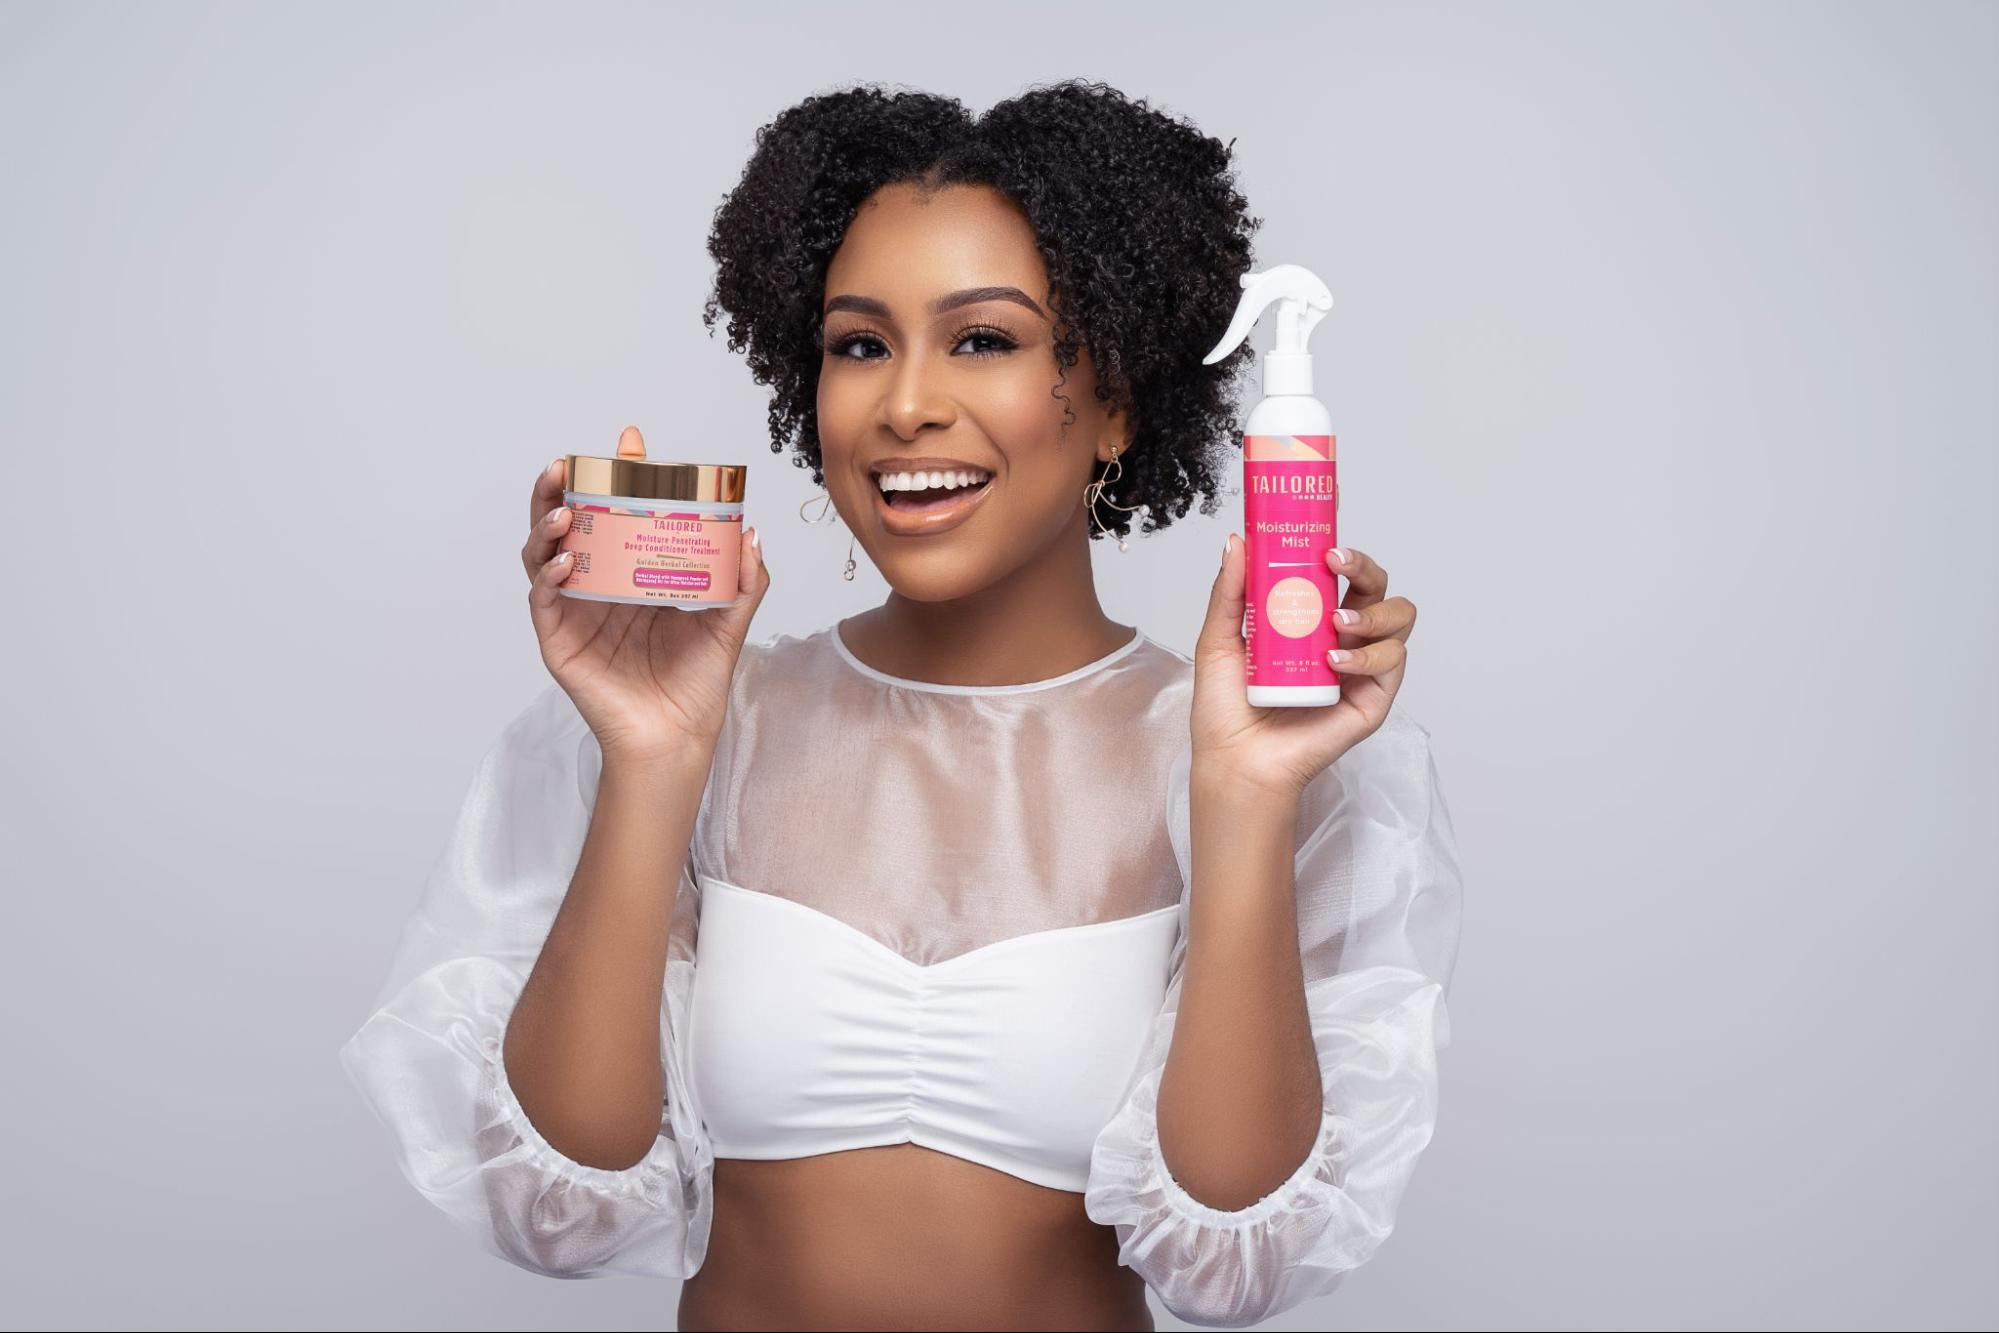 A model in a white outfit holding up two products from Tailored Beauty.